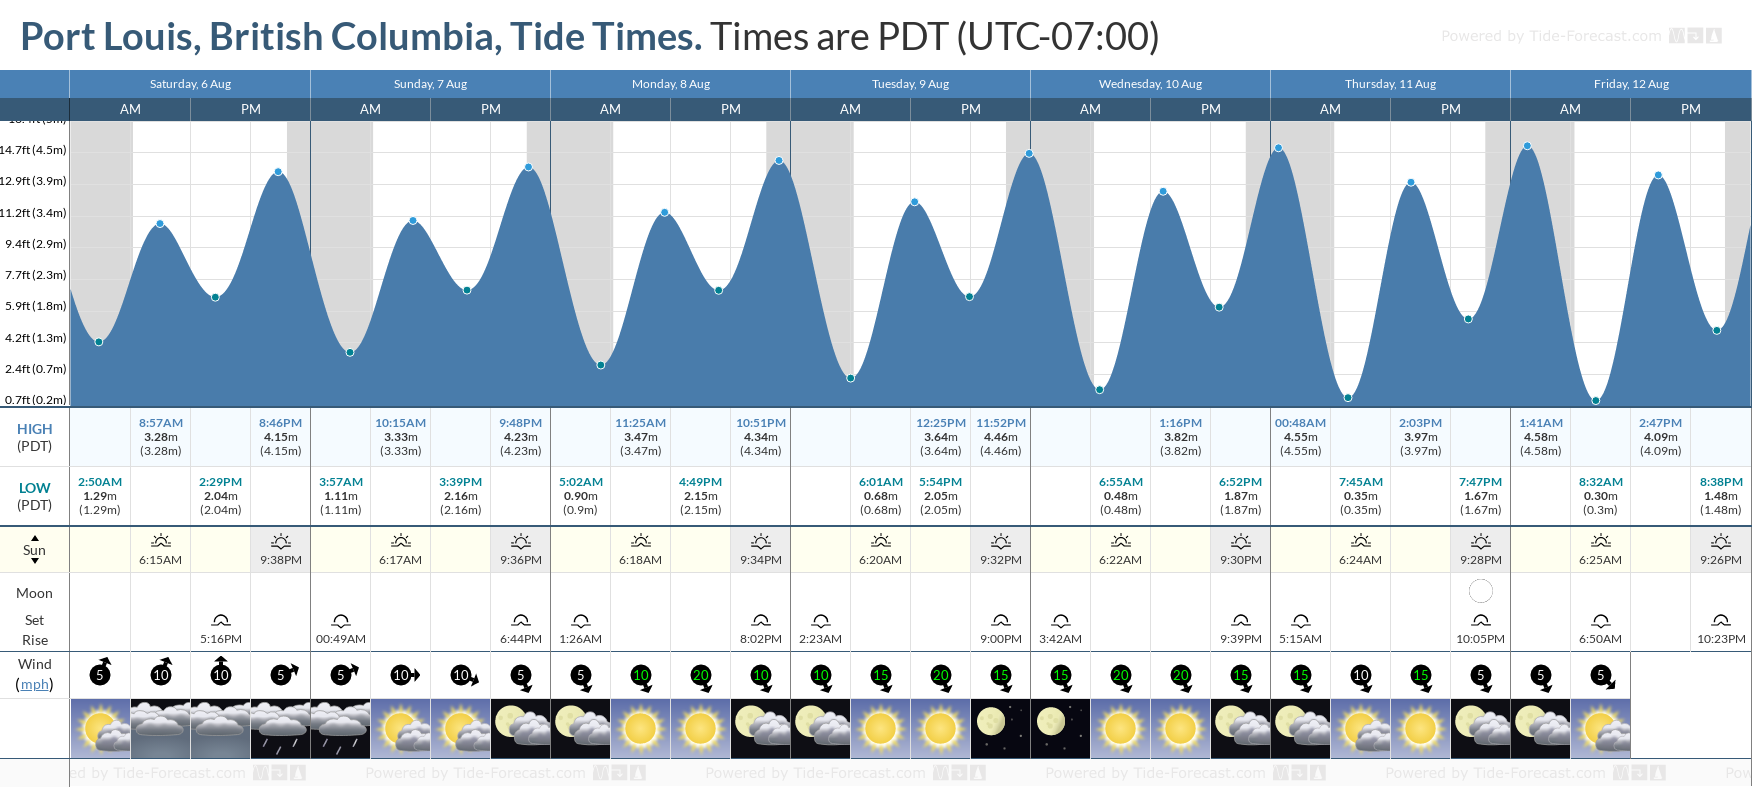 Port Louis, British Columbia Tide Chart including high and low tide tide times for the next 7 days